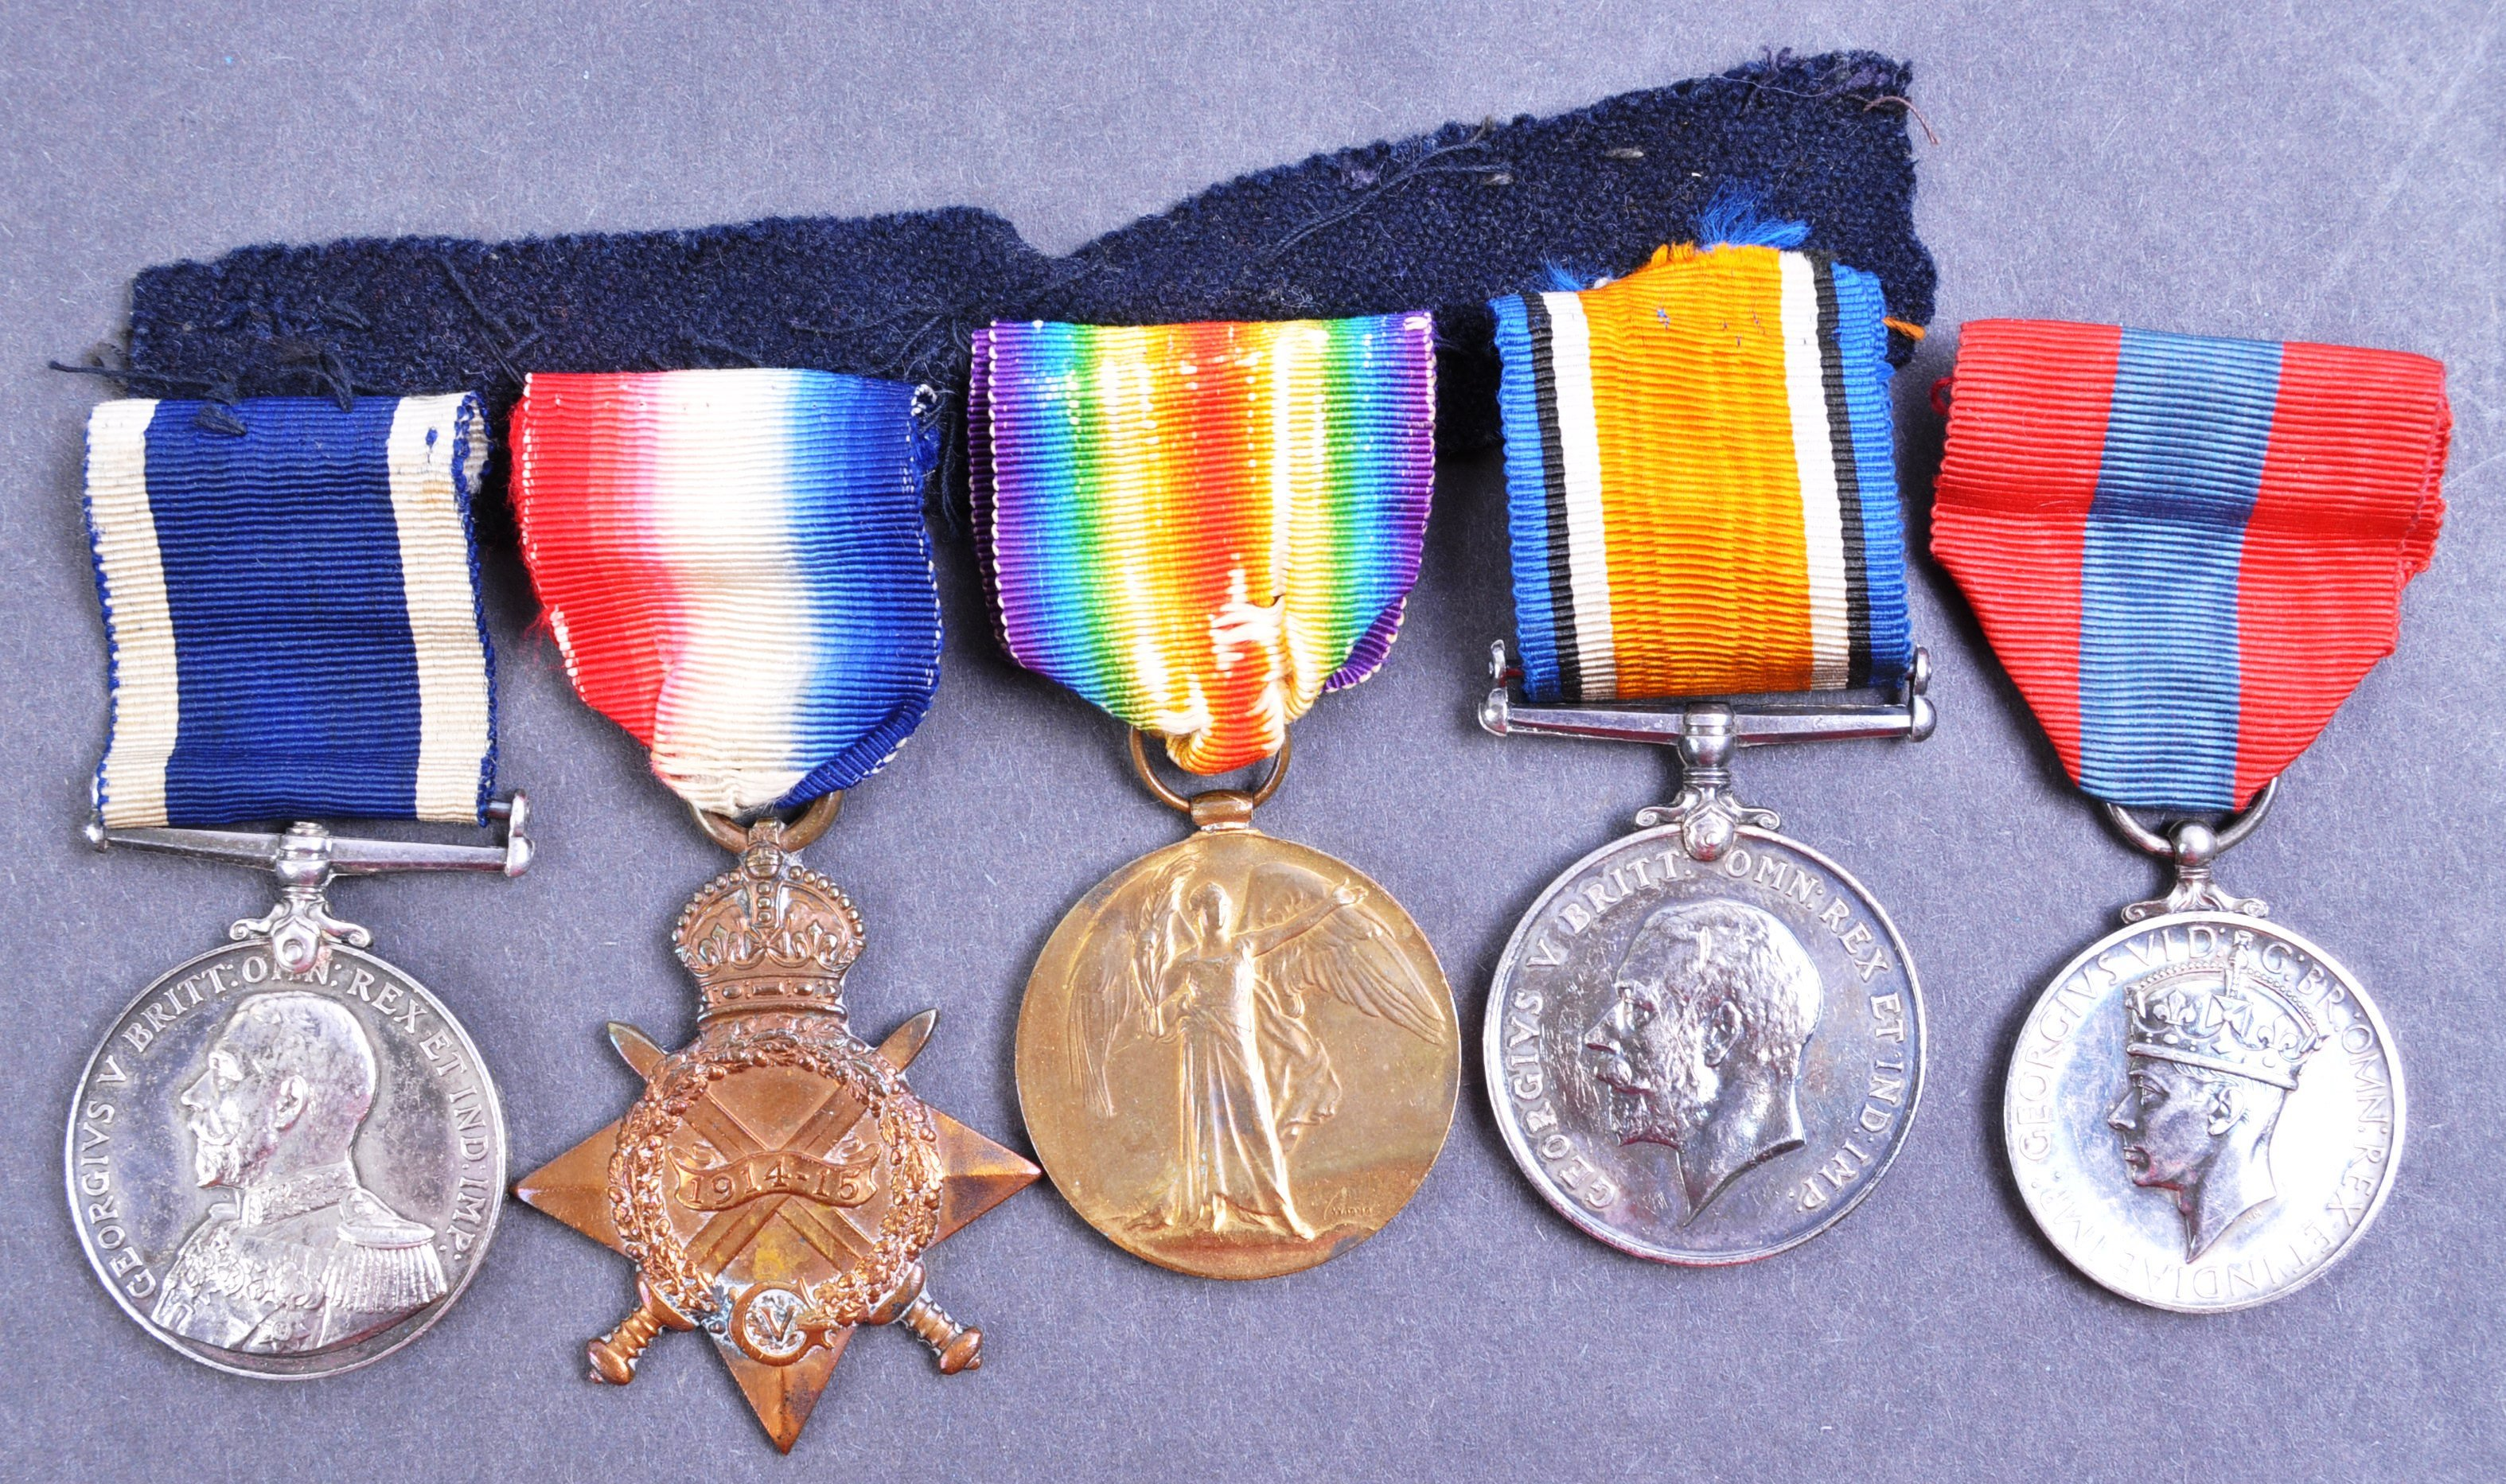 WWI FIRST WORLD WAR MEDAL GROUP - LEADING SEAMAN ROYAL NAVY